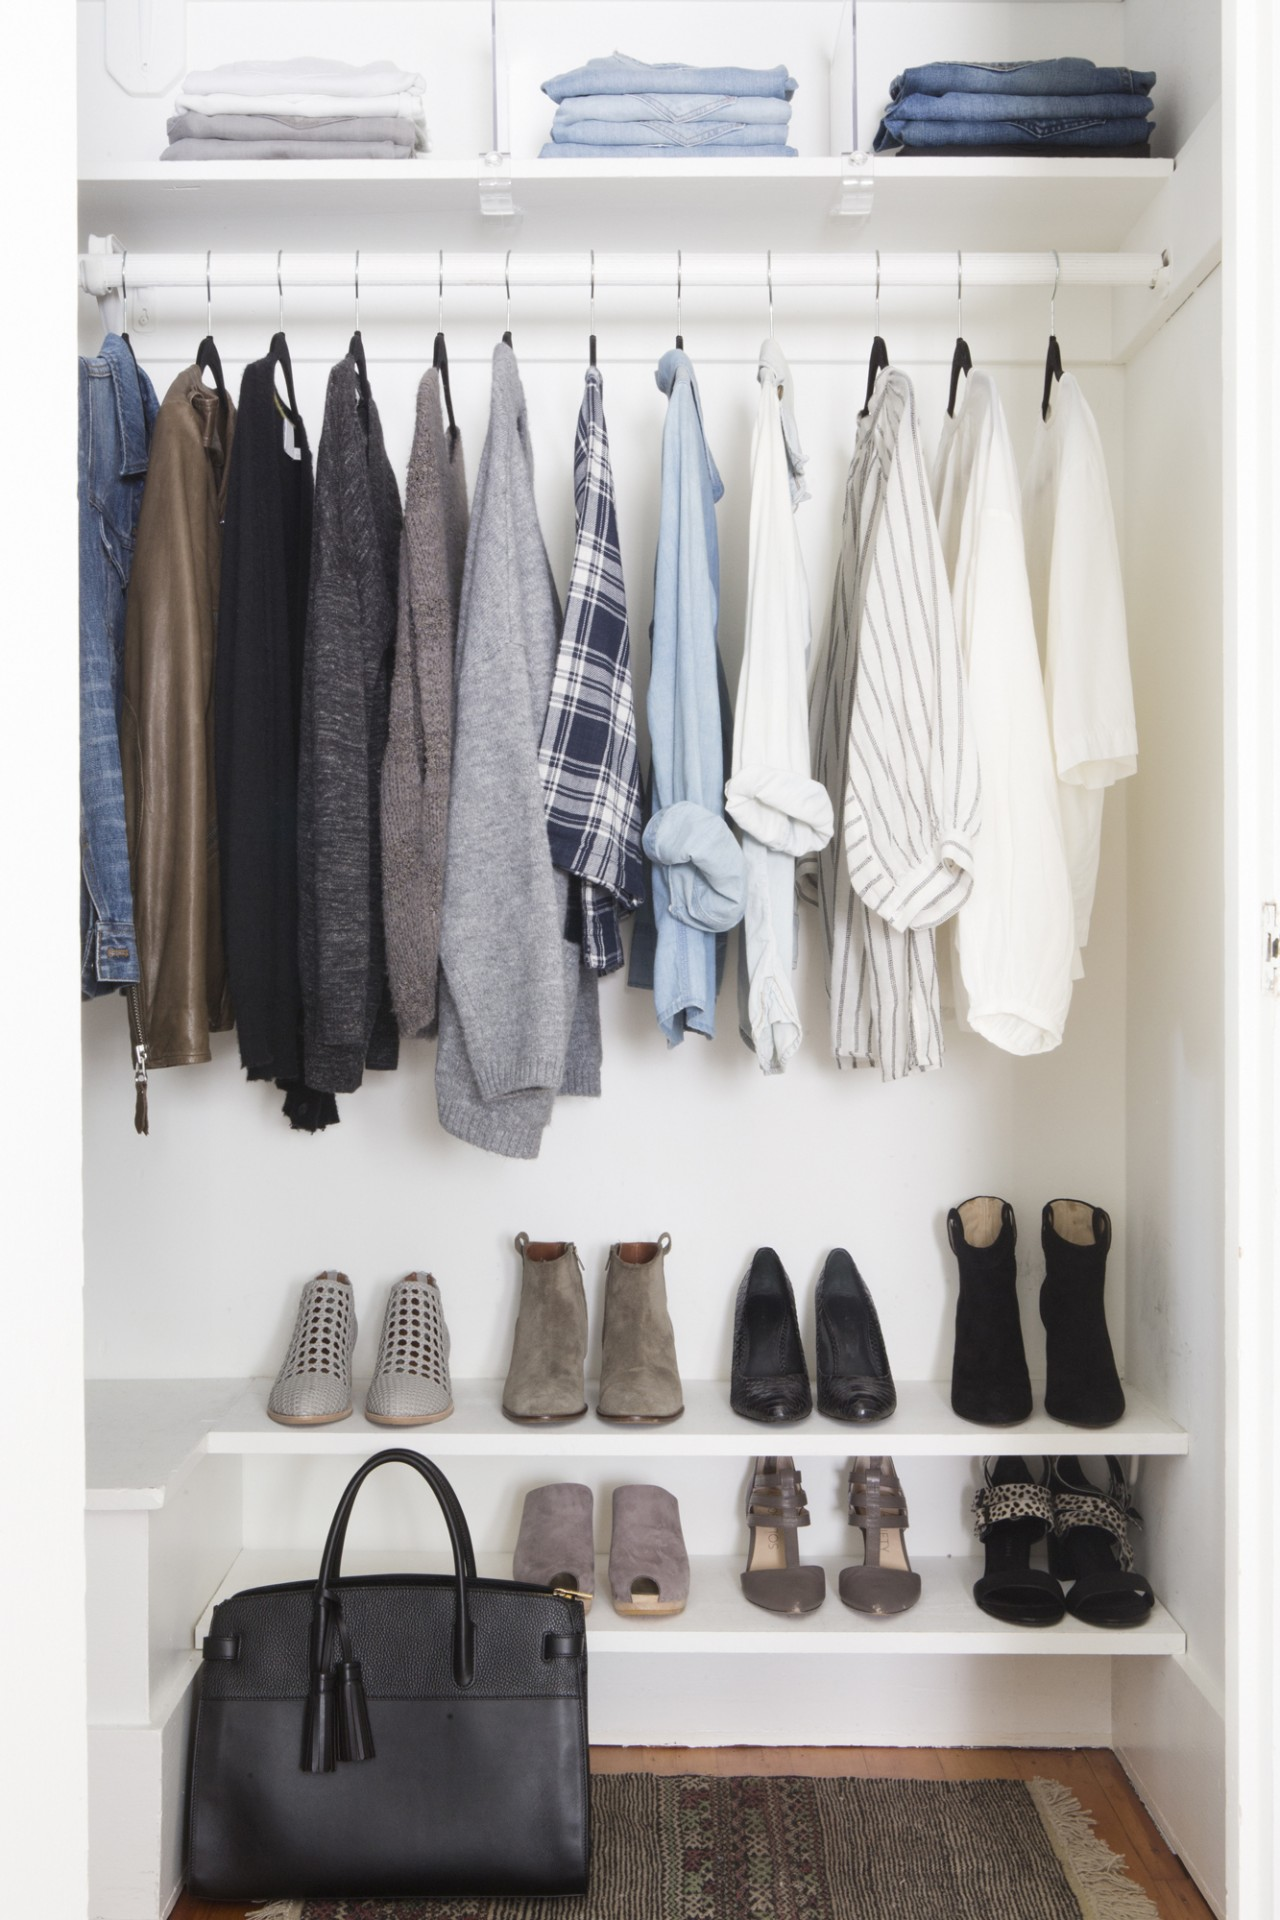 Sign up for a closet makeover workshop with Shira Gill and learn how to organize your closet and create a personal style.